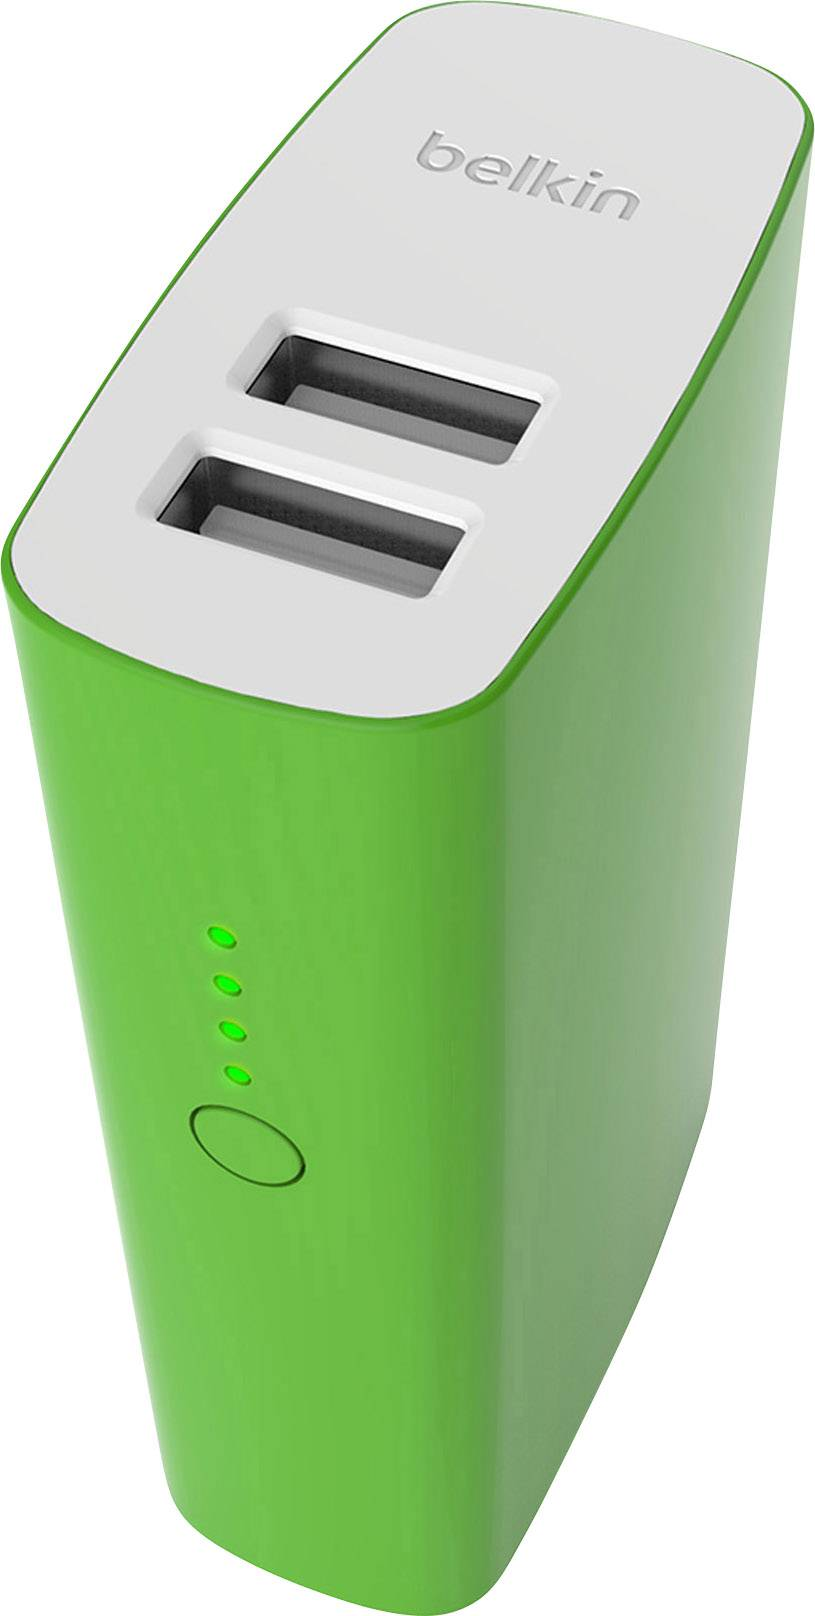 Belkin mixit 4000 Power bank (spare battery) Li-ion 4000 mAh